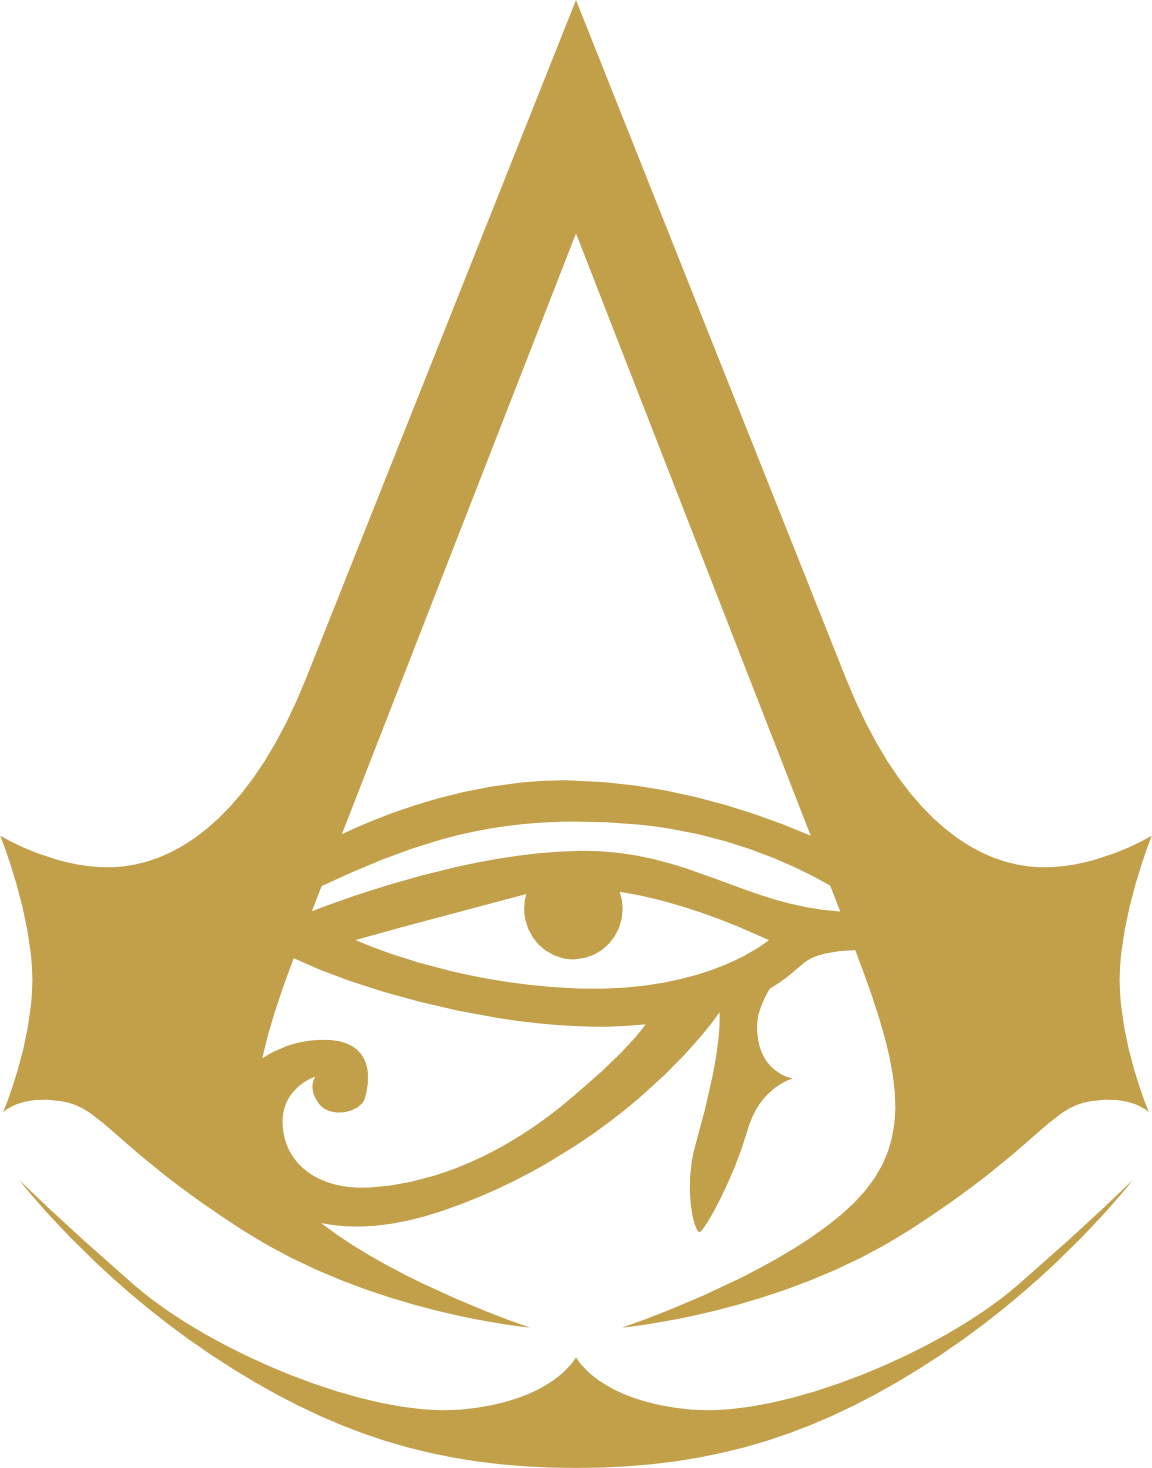 Assassin S Creed Origins Wallpaper And Logo Svg By Thegoldenbox